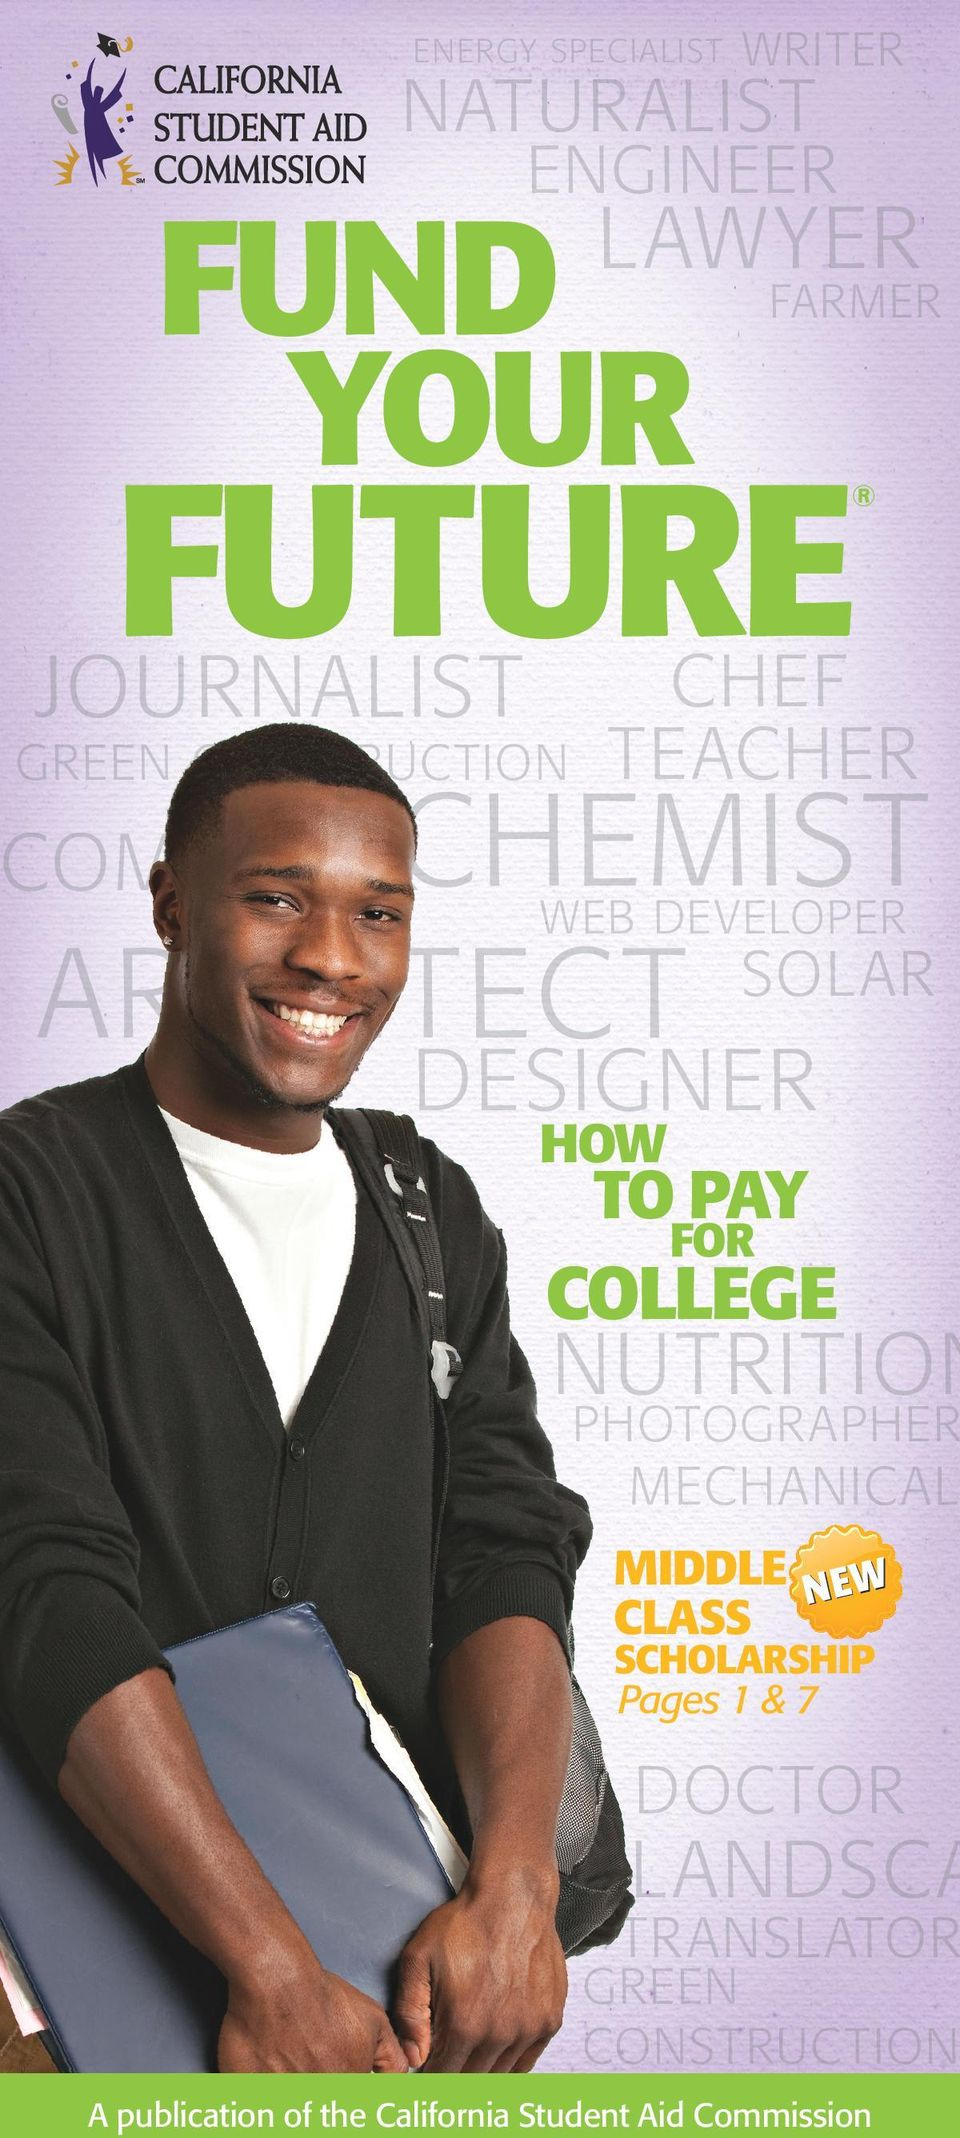 DESIGNER HOW TO PAY FOR COLLEGE NUTRITION PHOTOGRAPHER MECHANICAL MIDDLE N EW CLASS SCHOLARSHIP